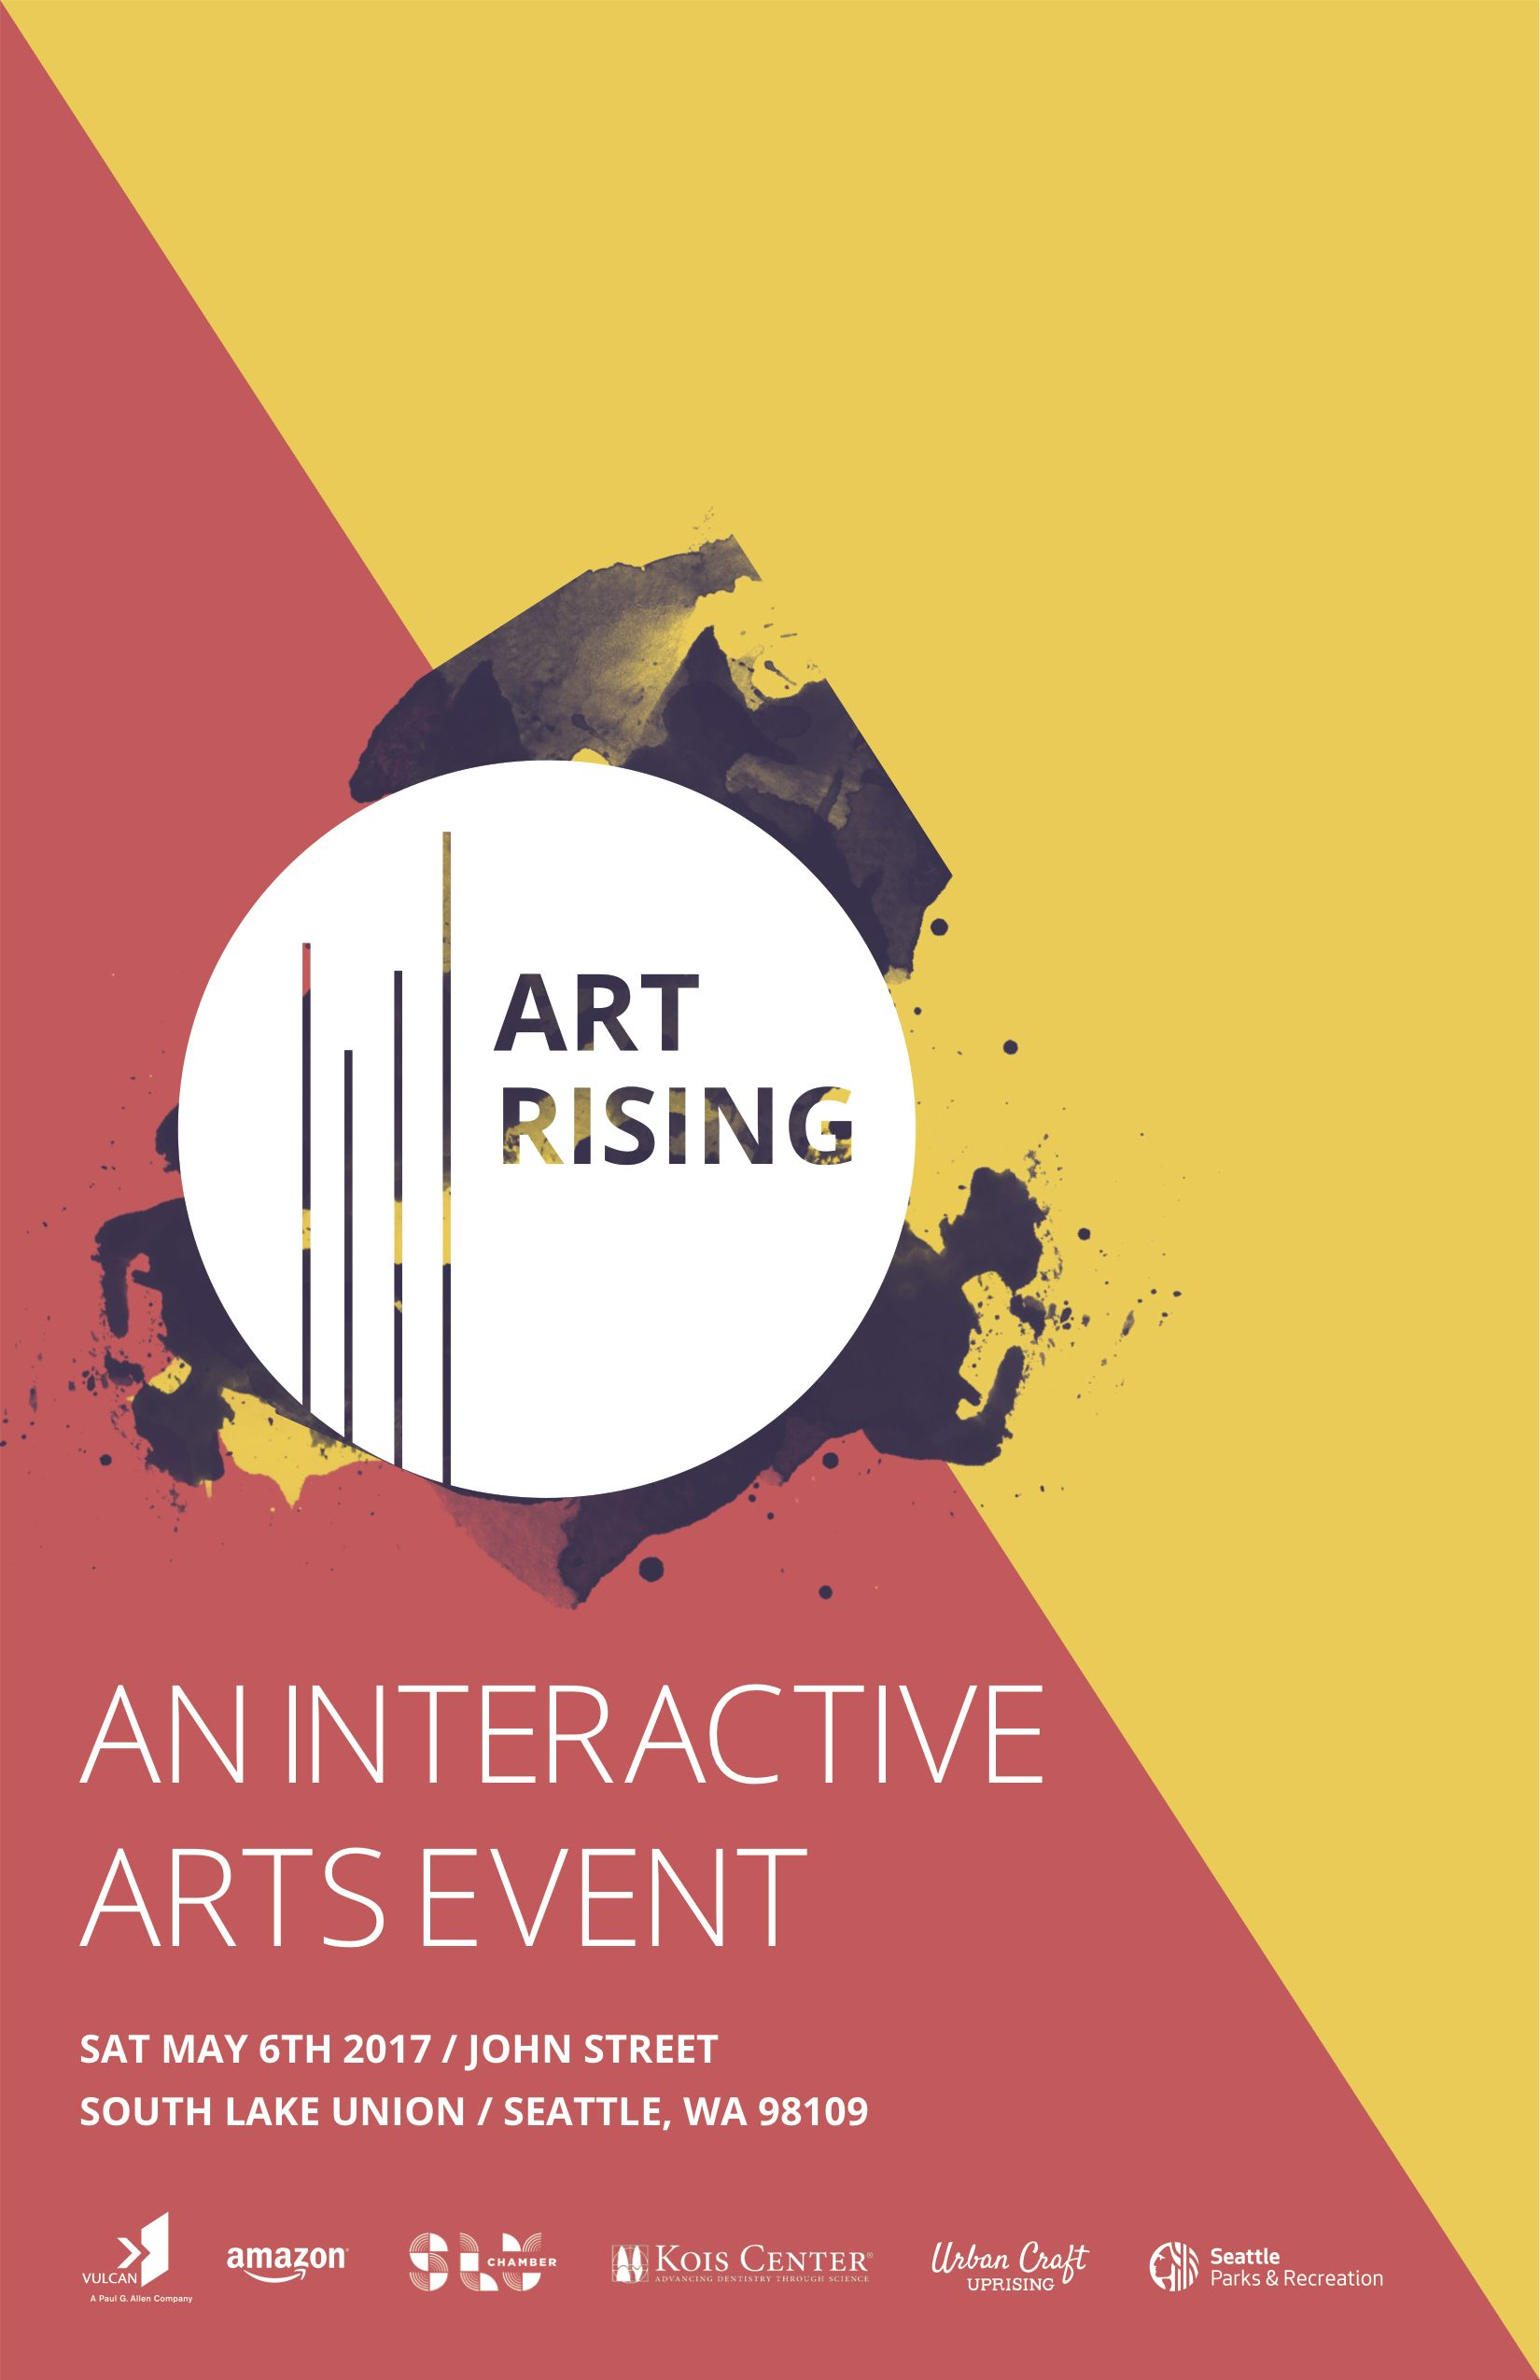 Art Rising South Lake Union Chamber Of Commerce Wa Art Poster Design Art Exhibition Posters Event Poster Design